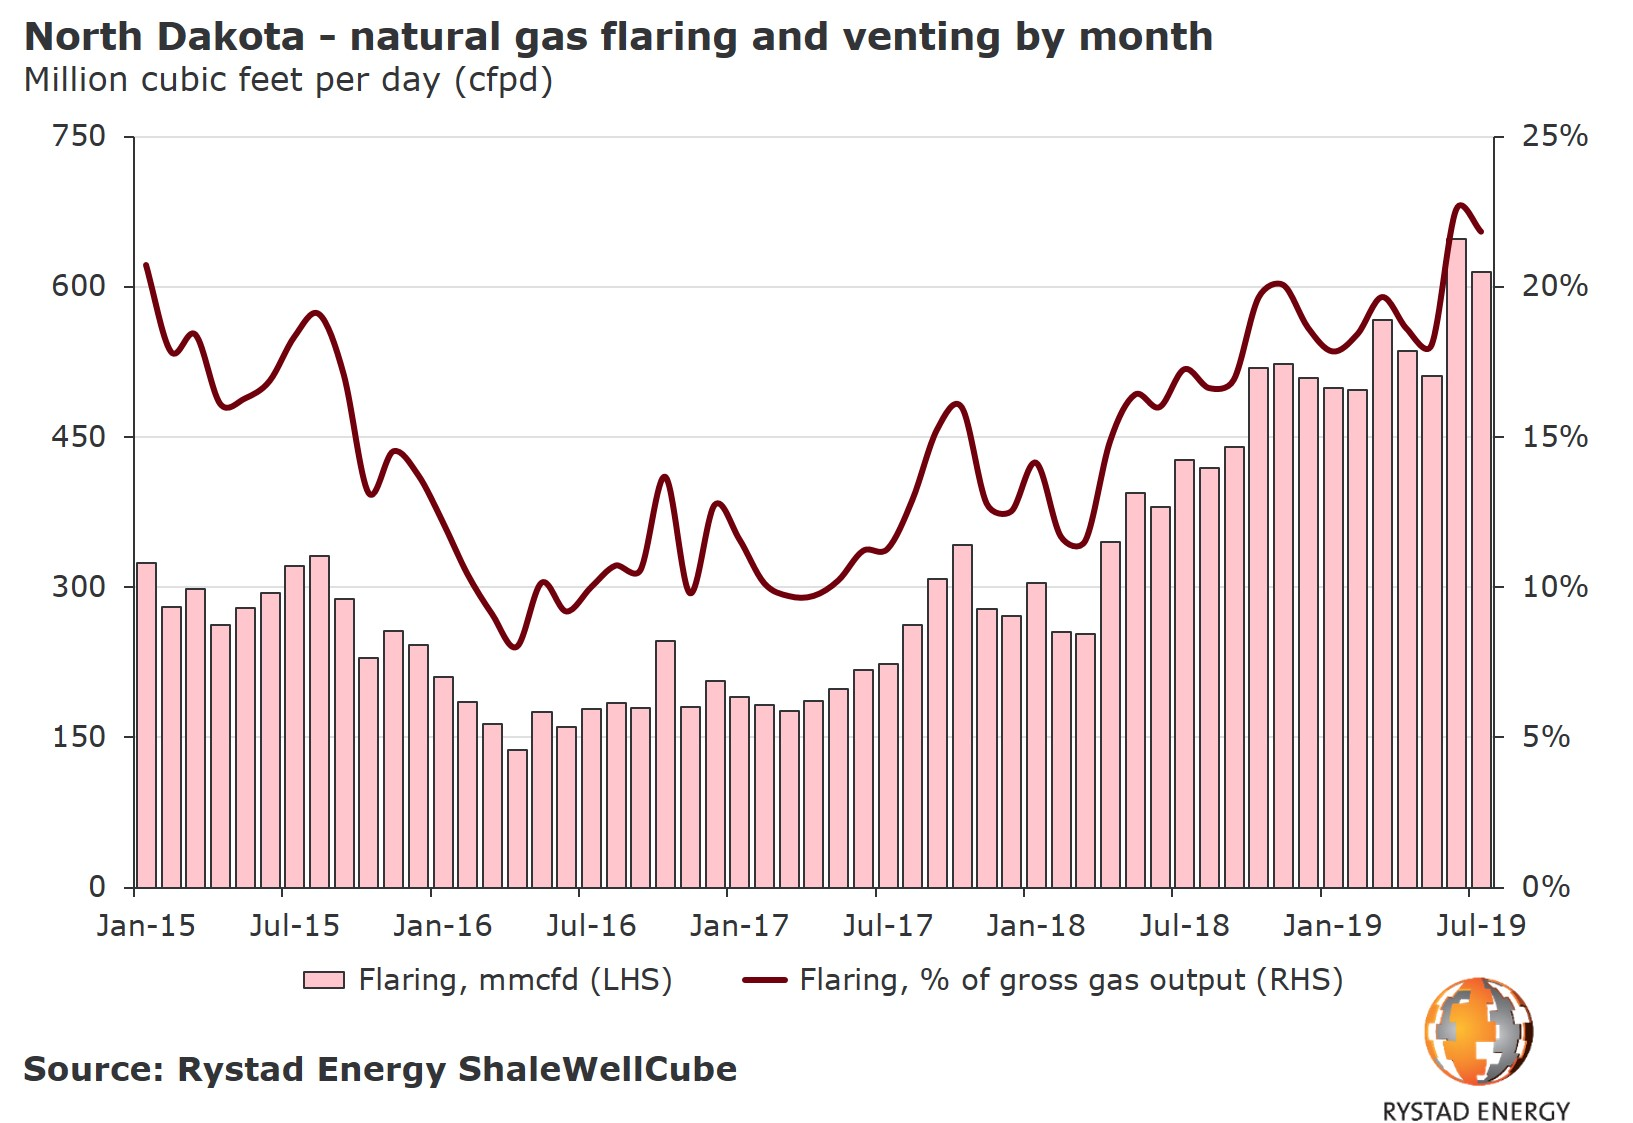 20191007_PR Chart 2 North Dakota flaring and venting by month 2015 2019.jpg